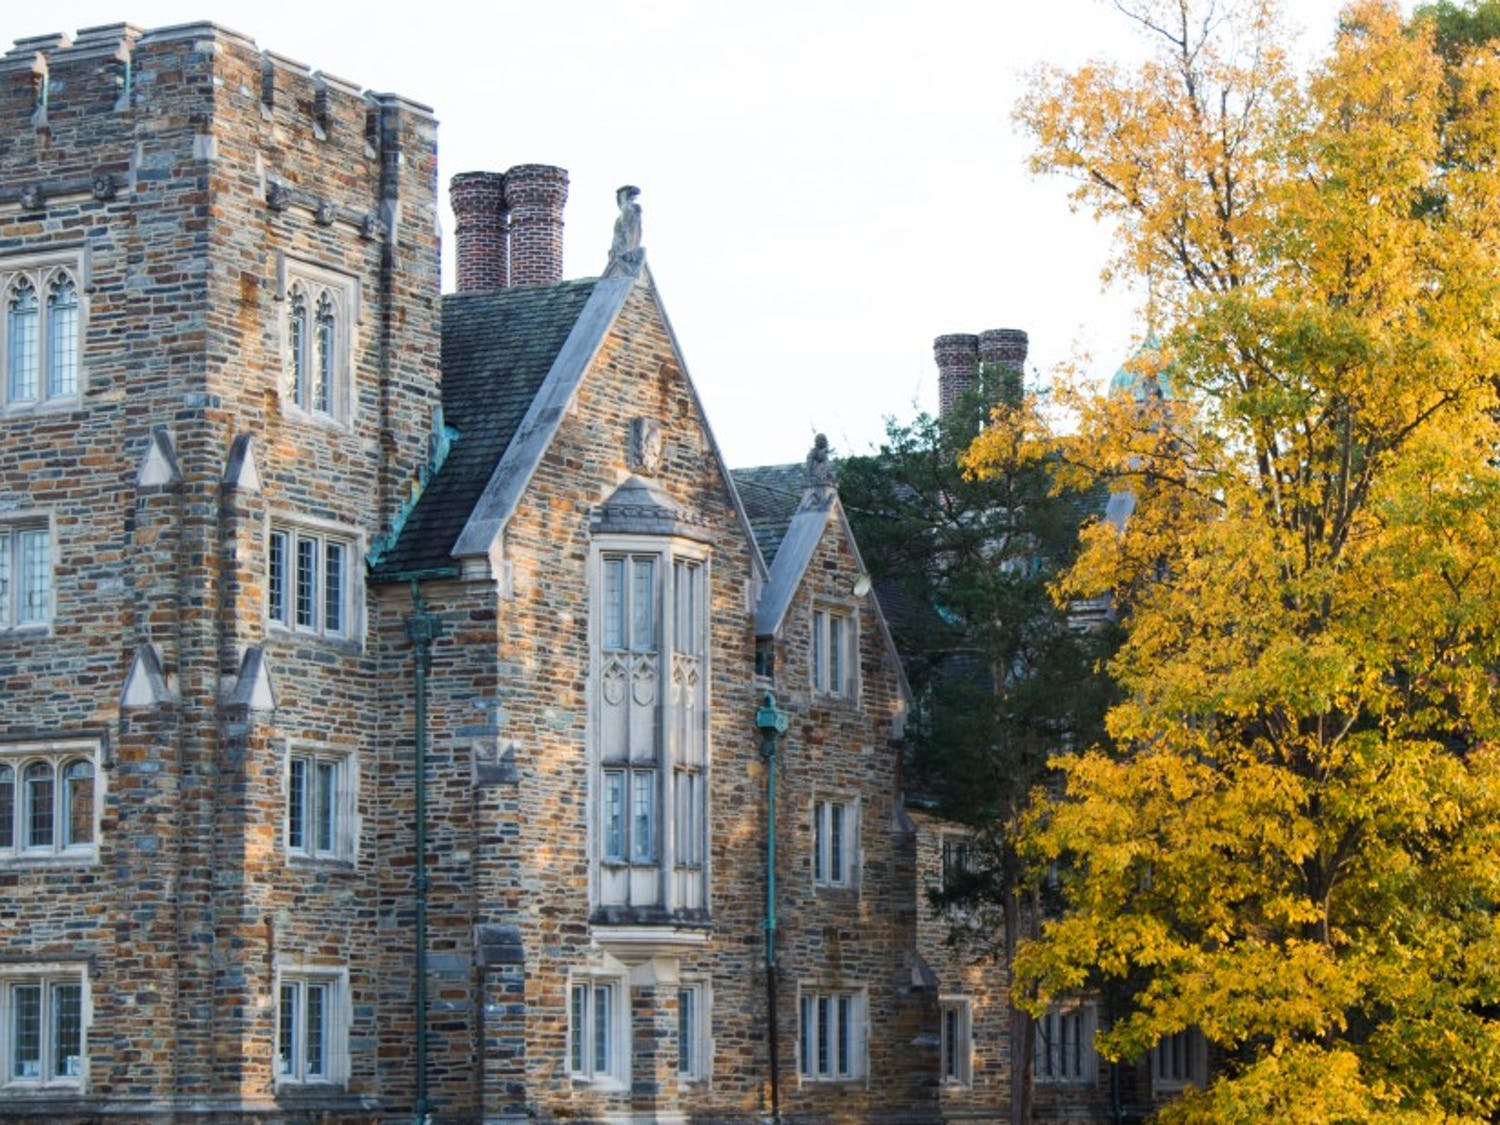 Changing leaves provide a colorful view for the residents of Kilgo Quad.